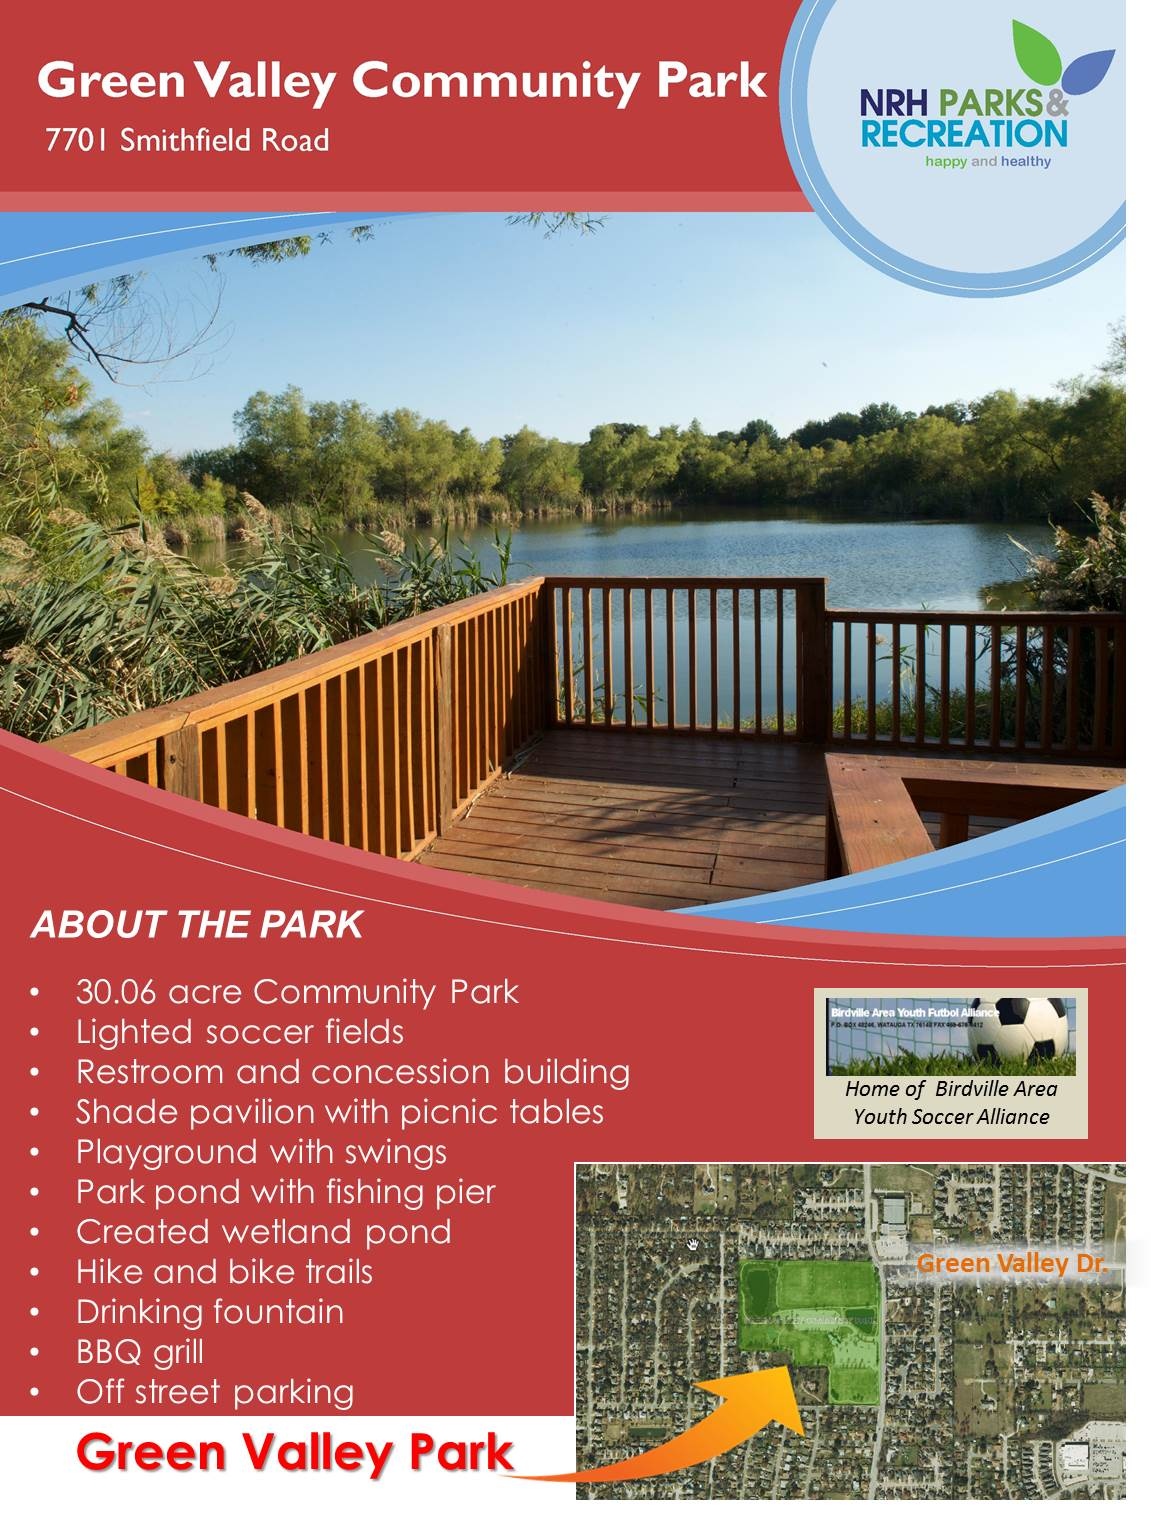 Green Valley Park Fact Sheet.jpg